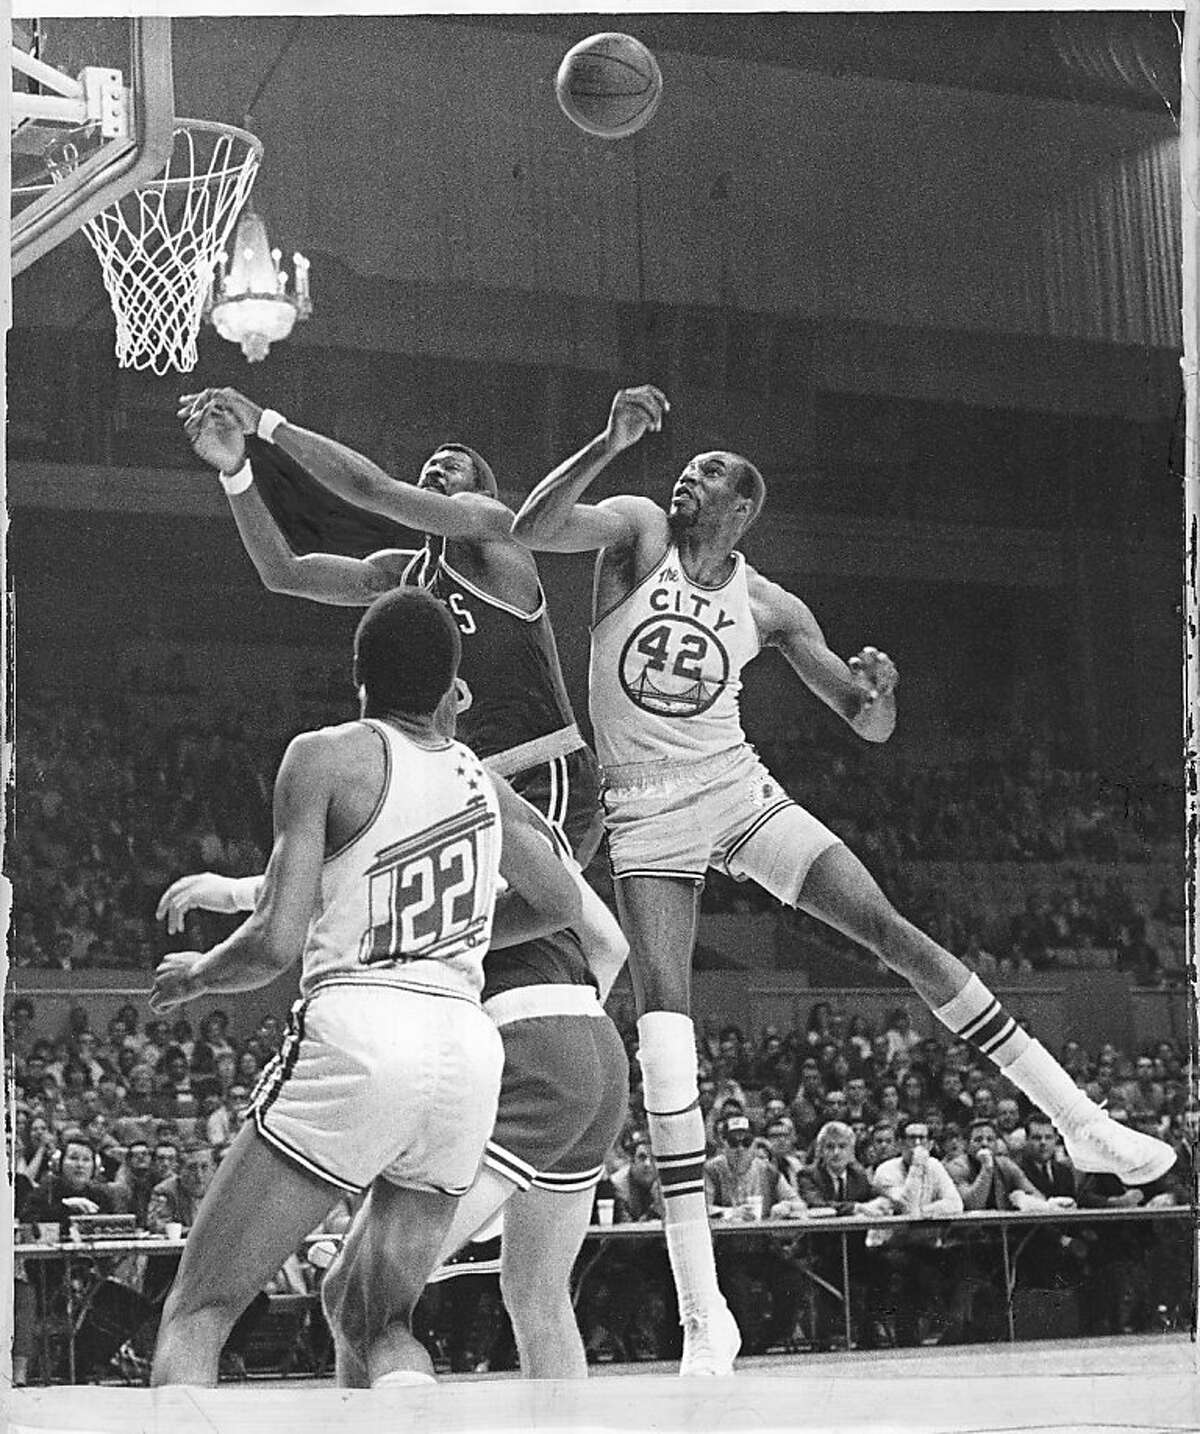 Nate Thurmond battles for a rebound against Boston in 1969. Photo was taken March 21, 1969.